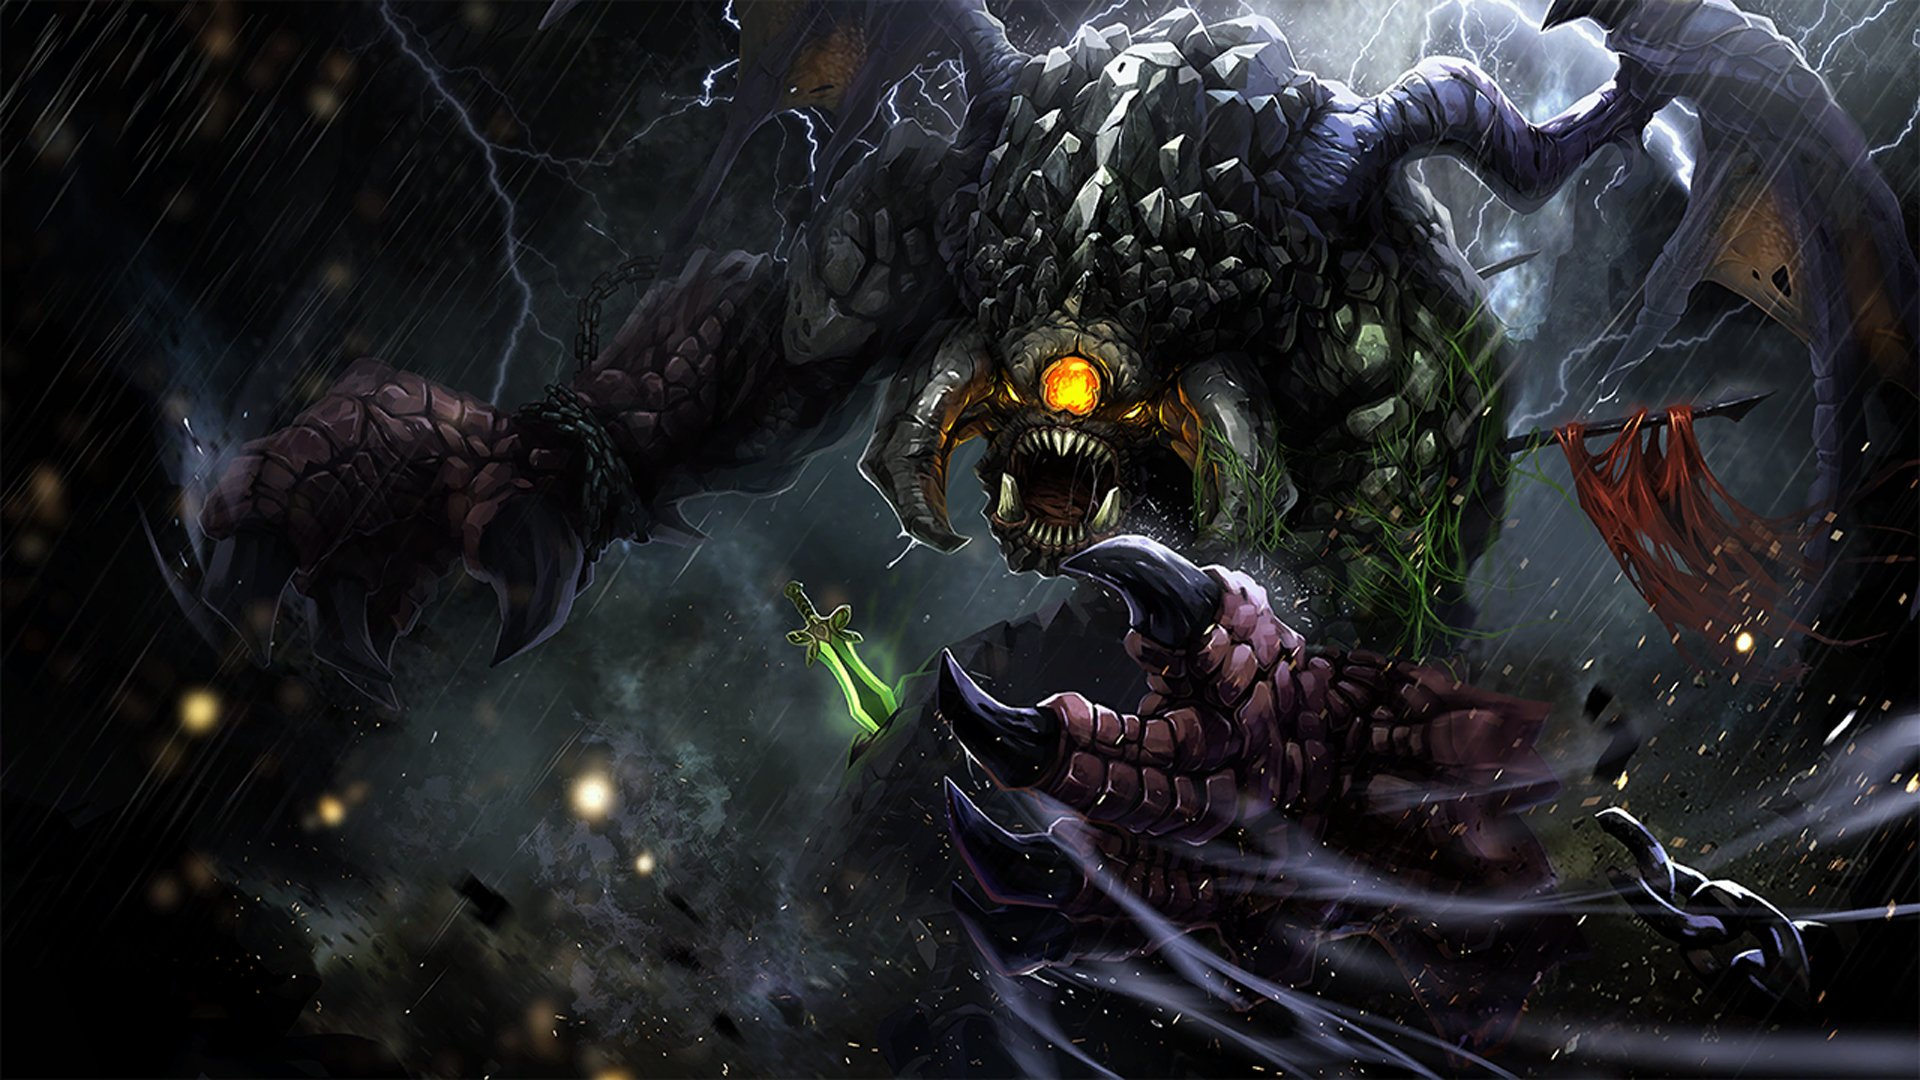 dota 2 game roshan epic hd 1920x1080 1080p wallpaper and compatible 1920x1080